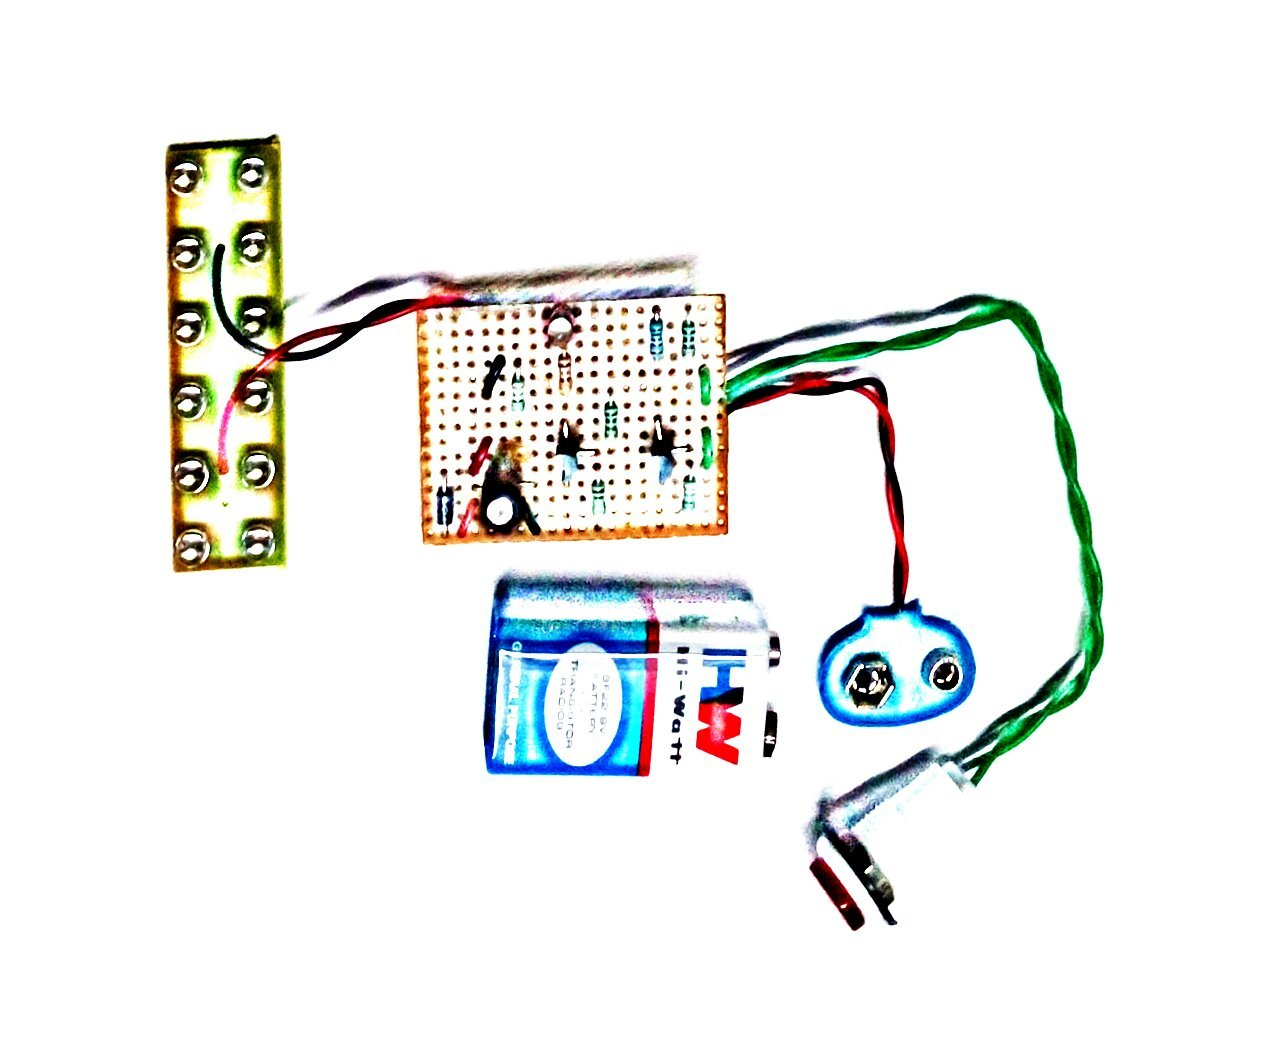 Pke Light Laser Switch Ldr Circuit Complete Project Working Model Electronics